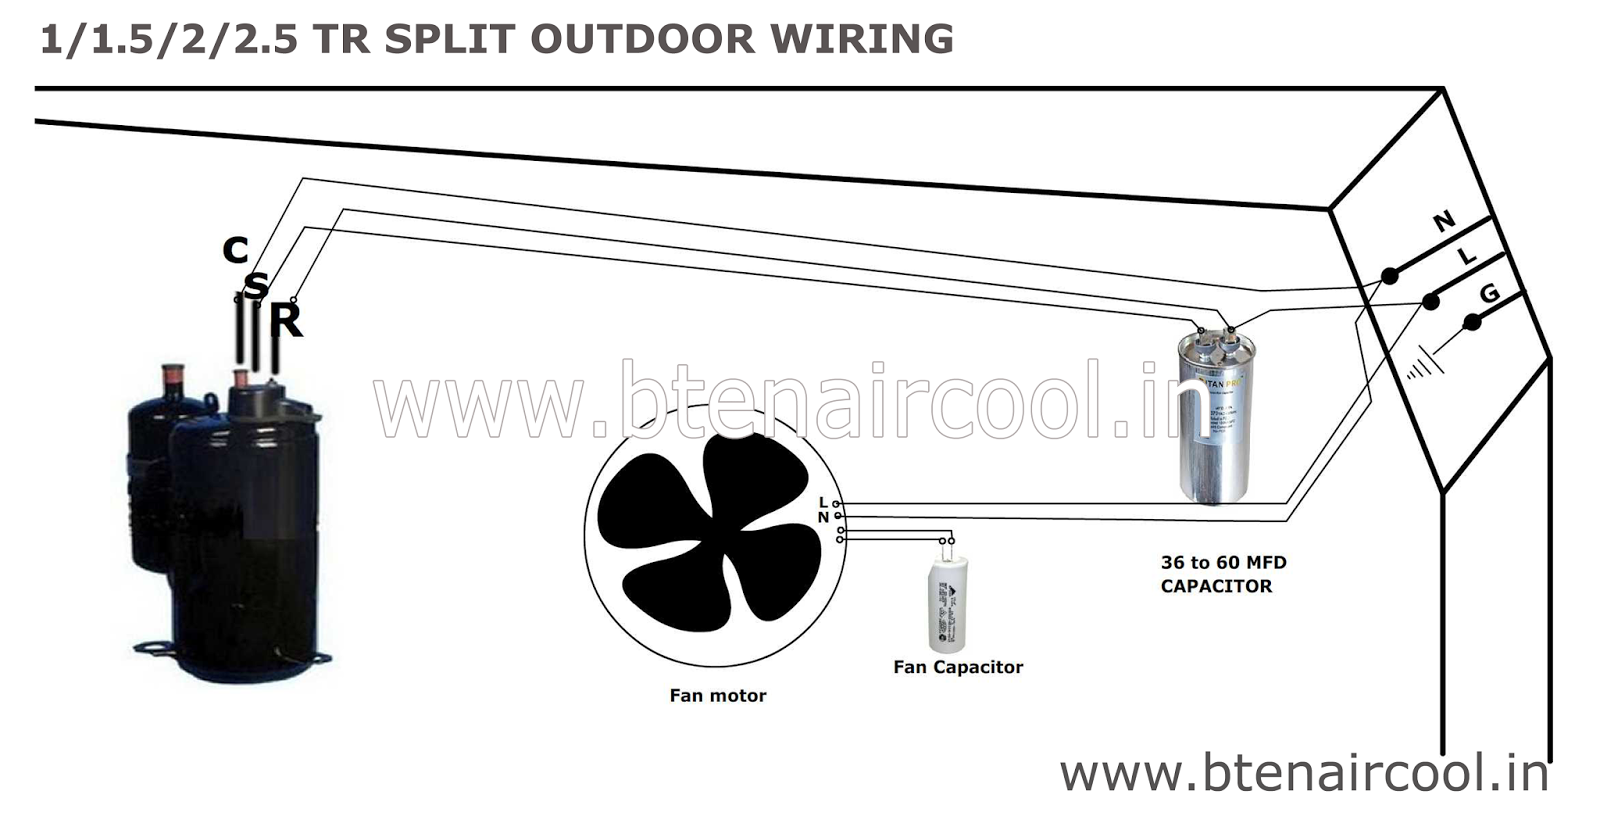 appradio 2 wiring diagram parts of the eye for kids bten aircool